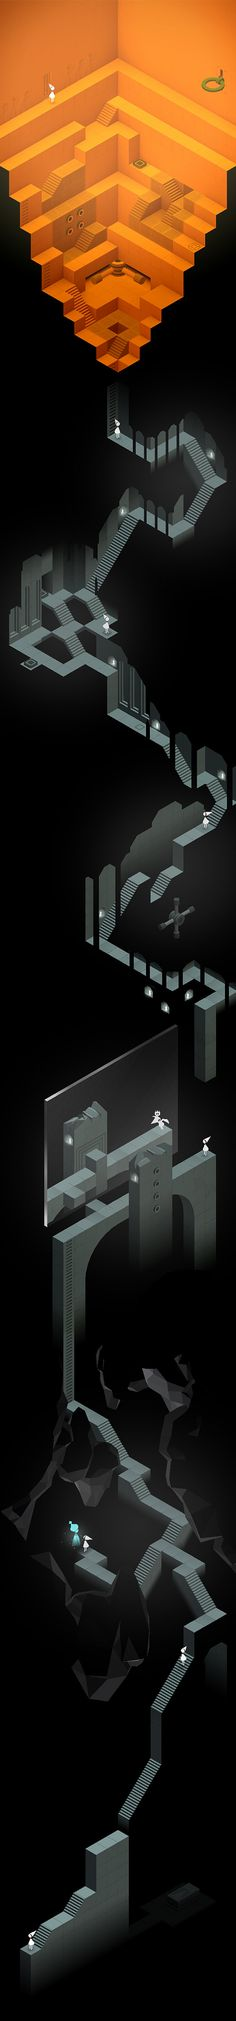 나의 하루 Monument Valley game - The Descent (Chapter IX), full vertical picture with Ida (the princess) and monument stairs. Isometric Art, Isometric Design, Isometric Shapes, Monument Valley Game, Game Level Design, Ombres Portées, Low Poly, Game Background, Art Graphique